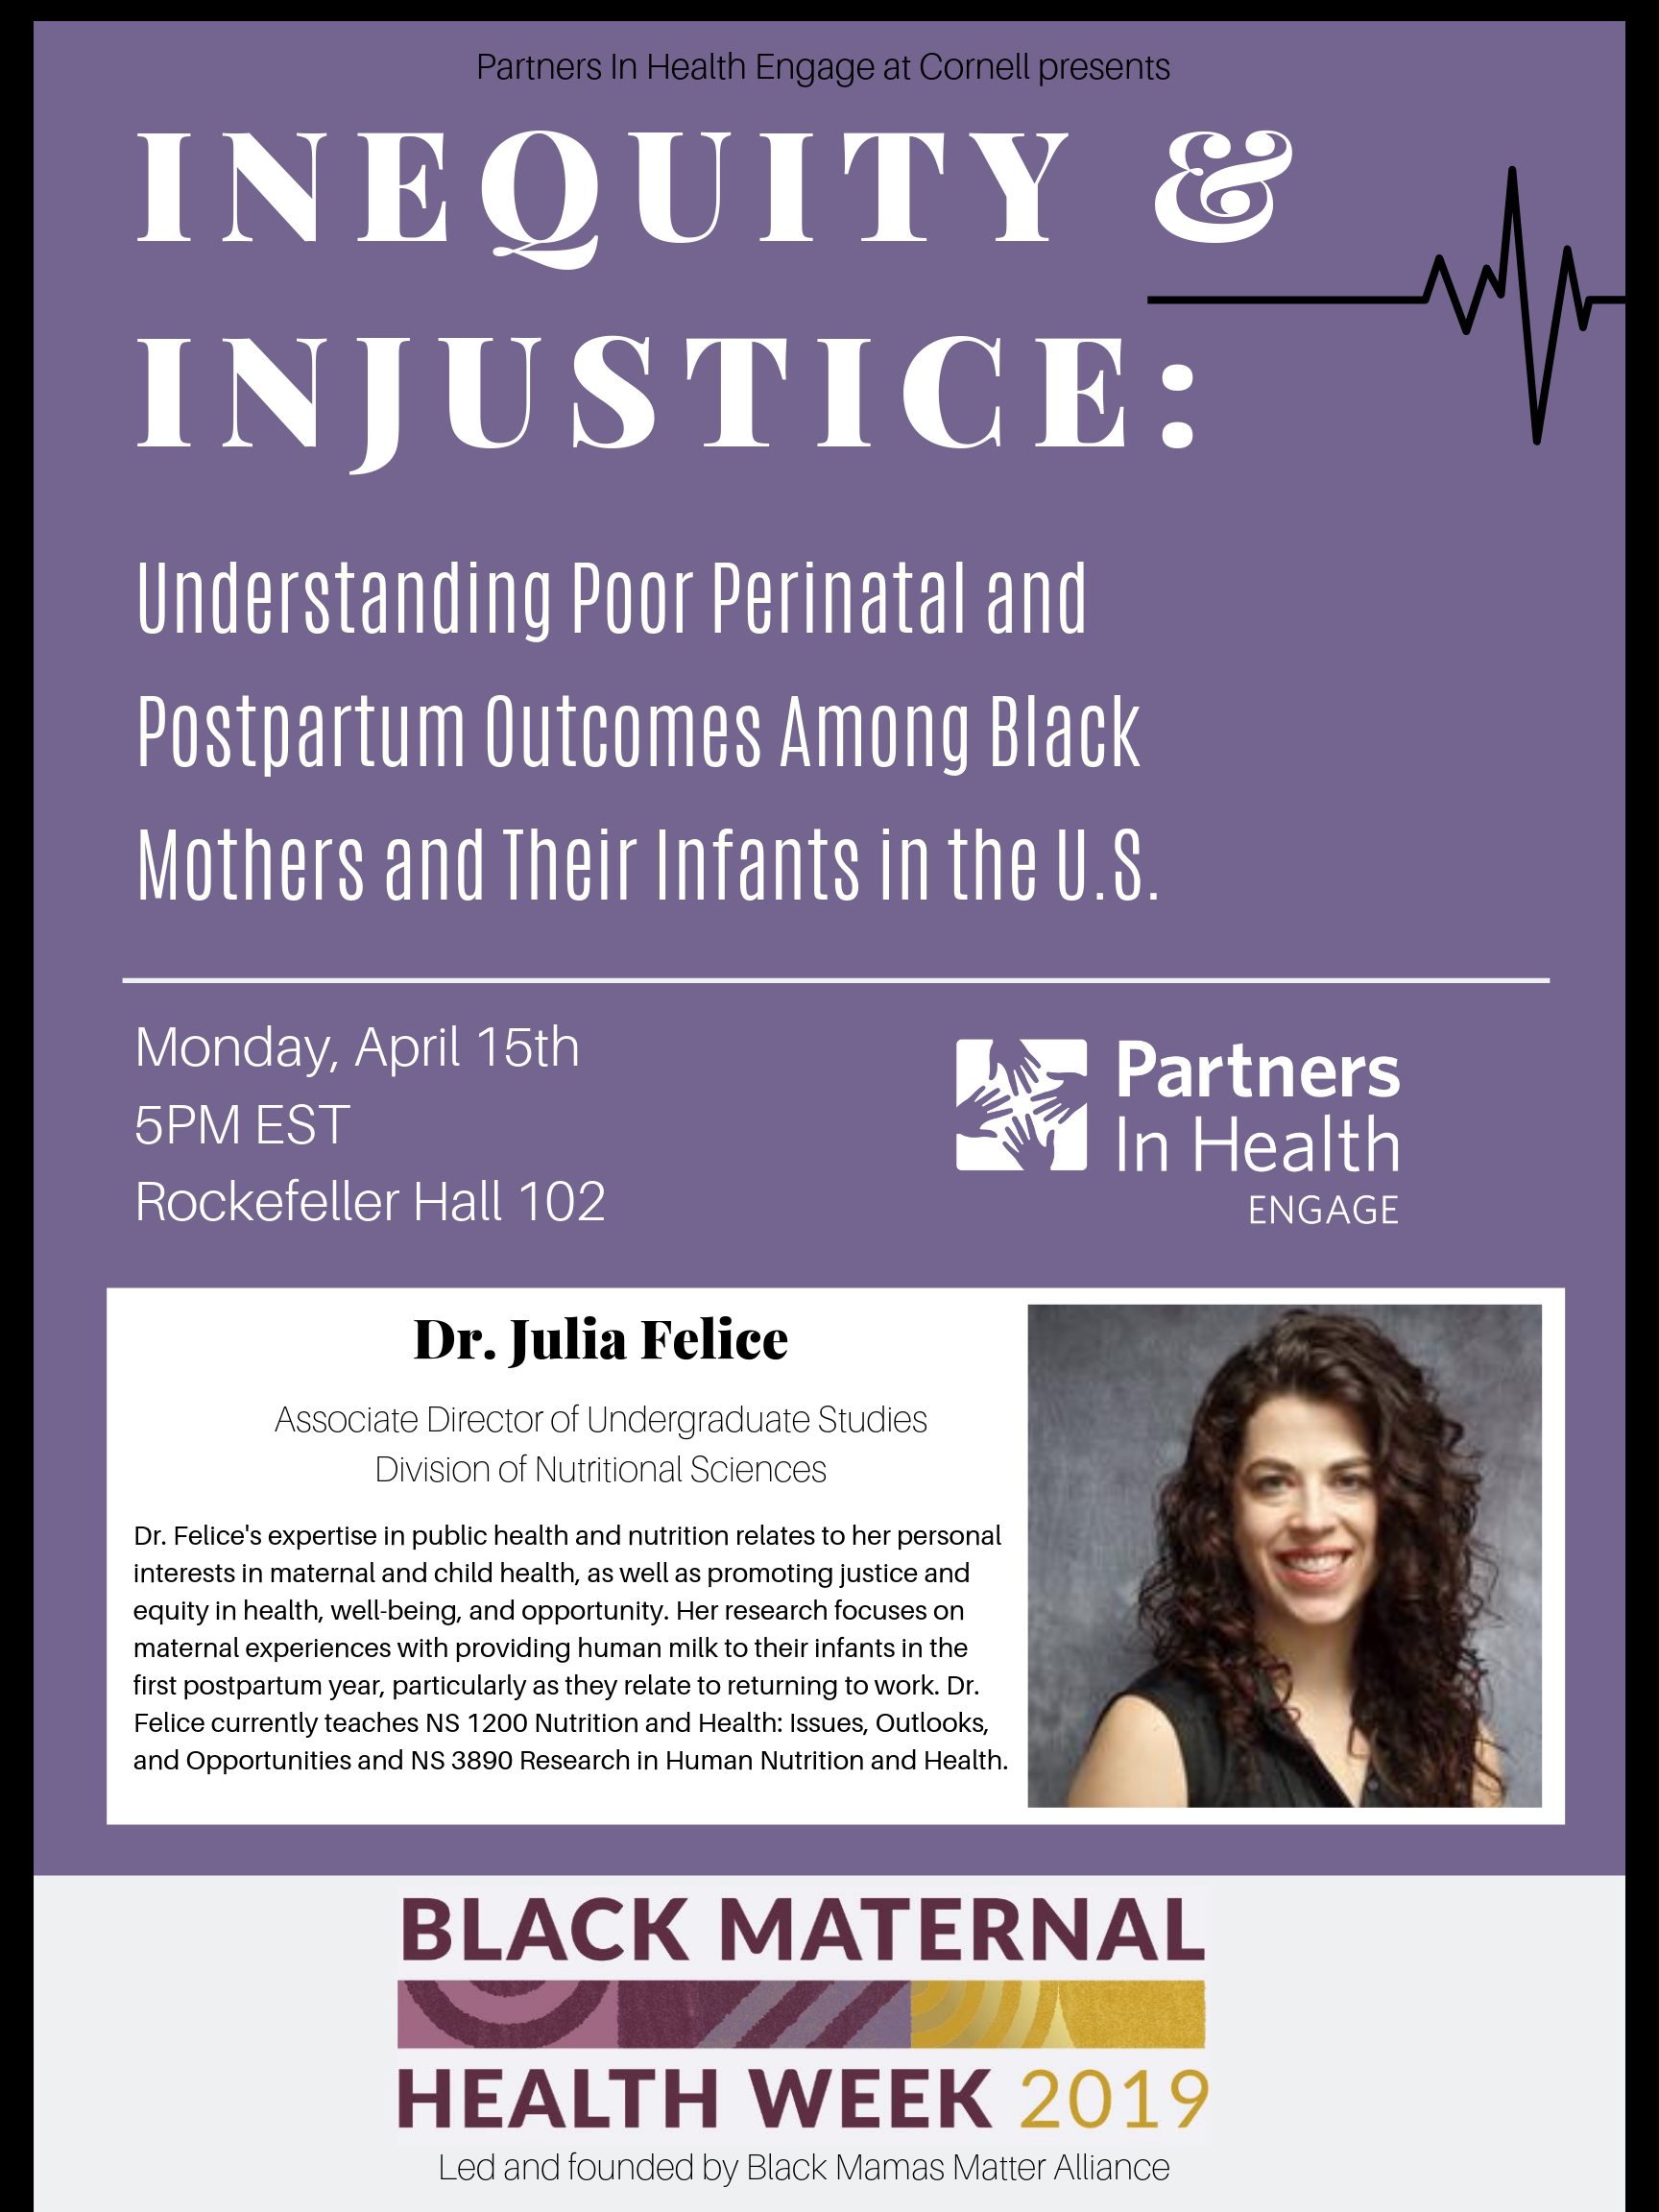 Inequity & Injustice: Understanding Poor Perinatal and Postpartum Outcomes Among Black Mothers and Their Infants in the U.S.